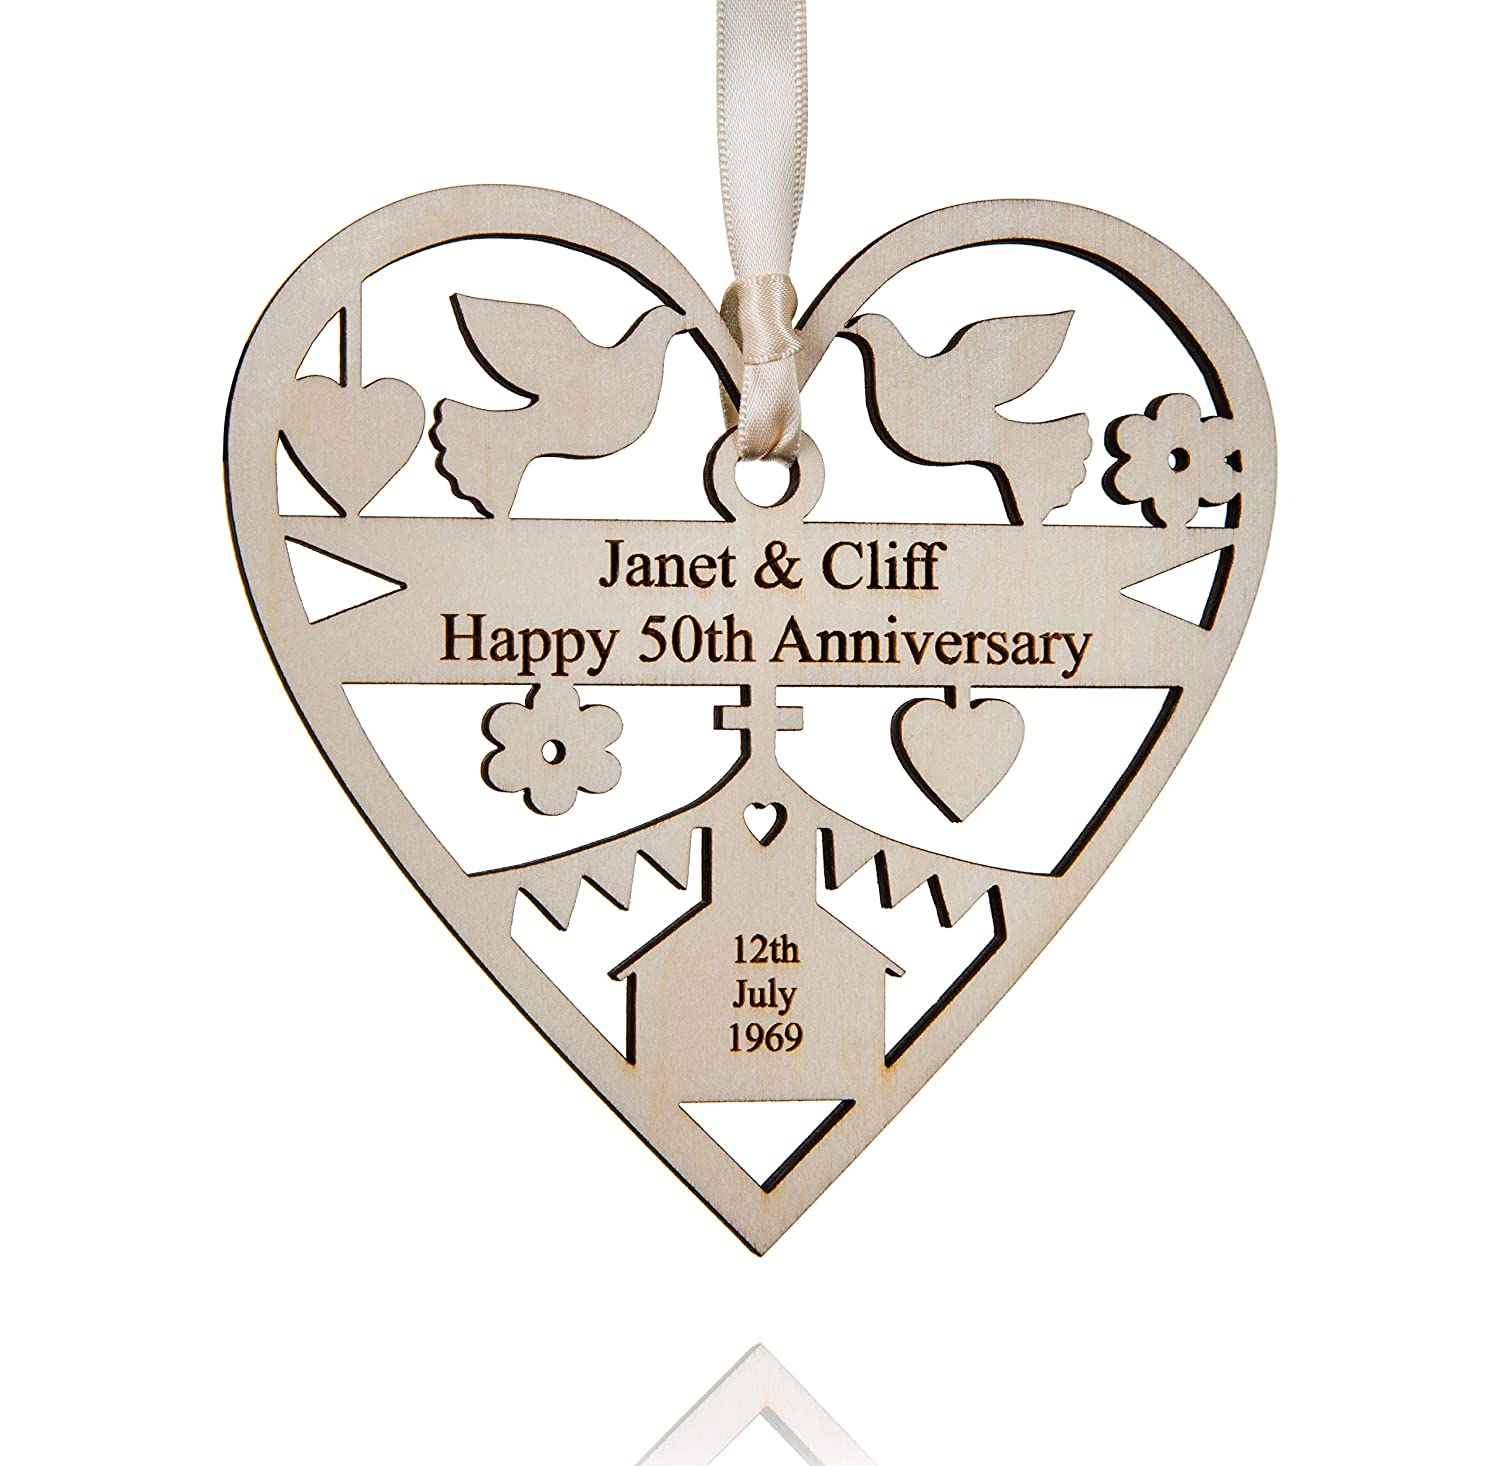 ALPHABET BARN Personalised Wedding Anniversary Gift wooden heart decoration for him or her, hand cut and engraved with your chosen wording, includes gift bag, keepsake measures 12.5cm x 12.5cm, Golden Silver Pearl Ruby Sapphire Diamond 1st 5th 10th 25th 3